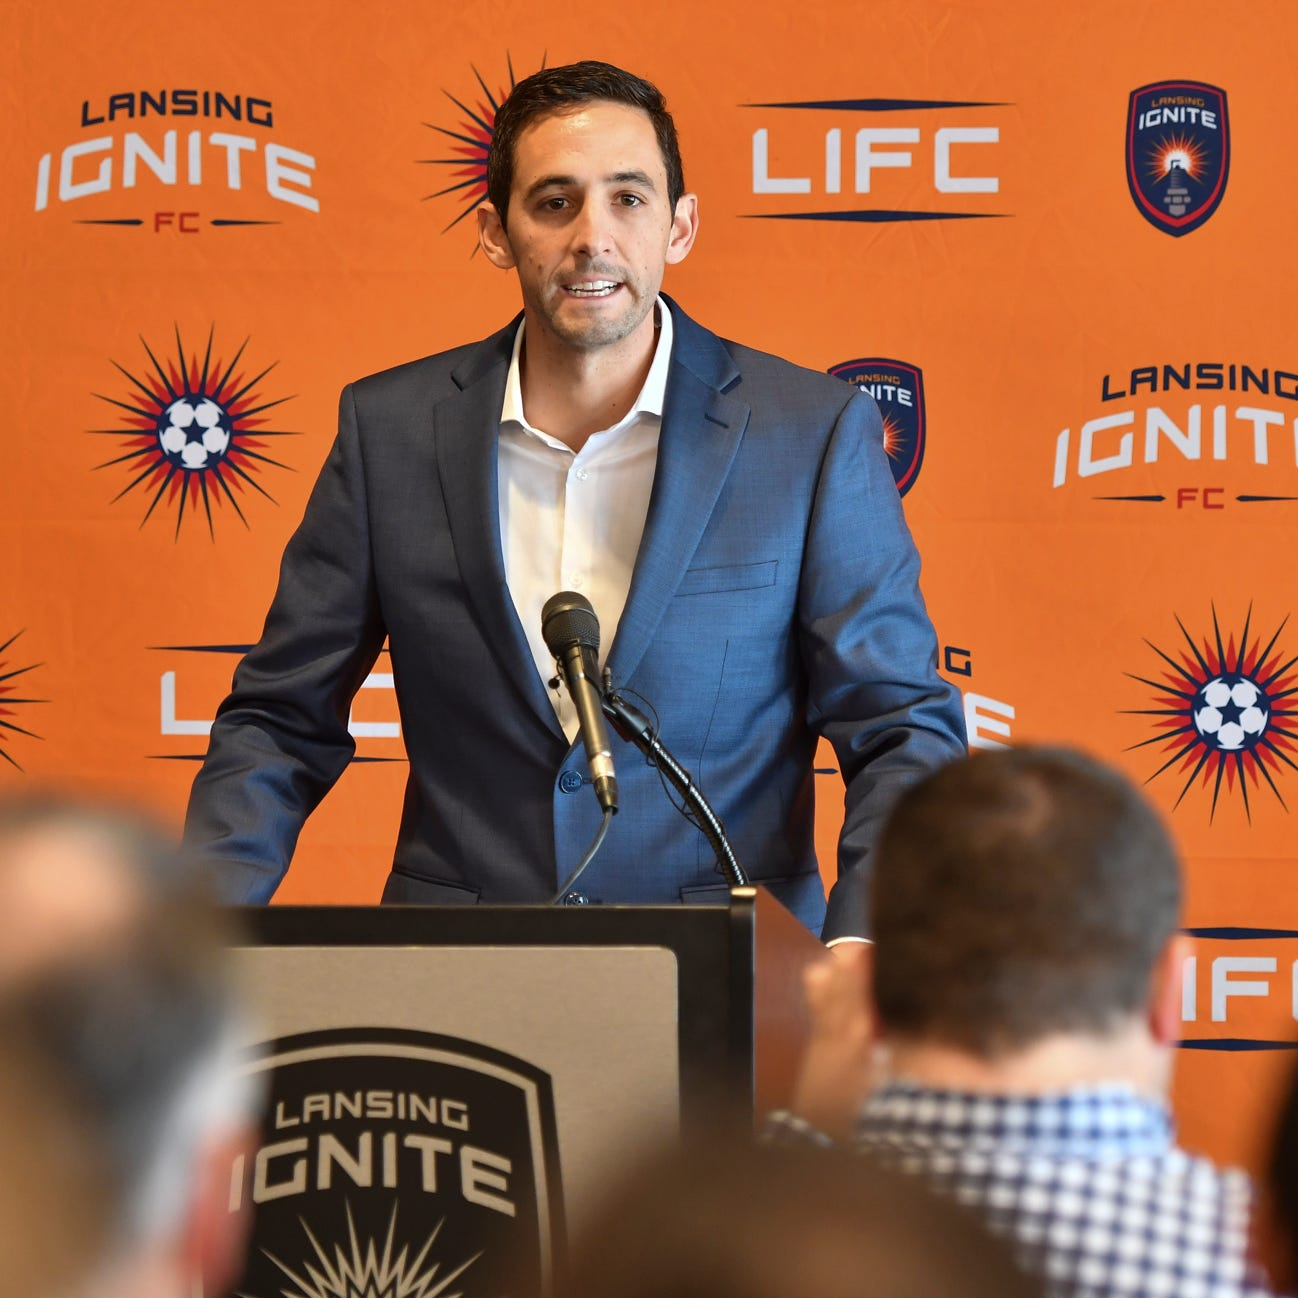 Lansing Ignite soccer's first coach, Nate Miller, ready to bring championships to the city